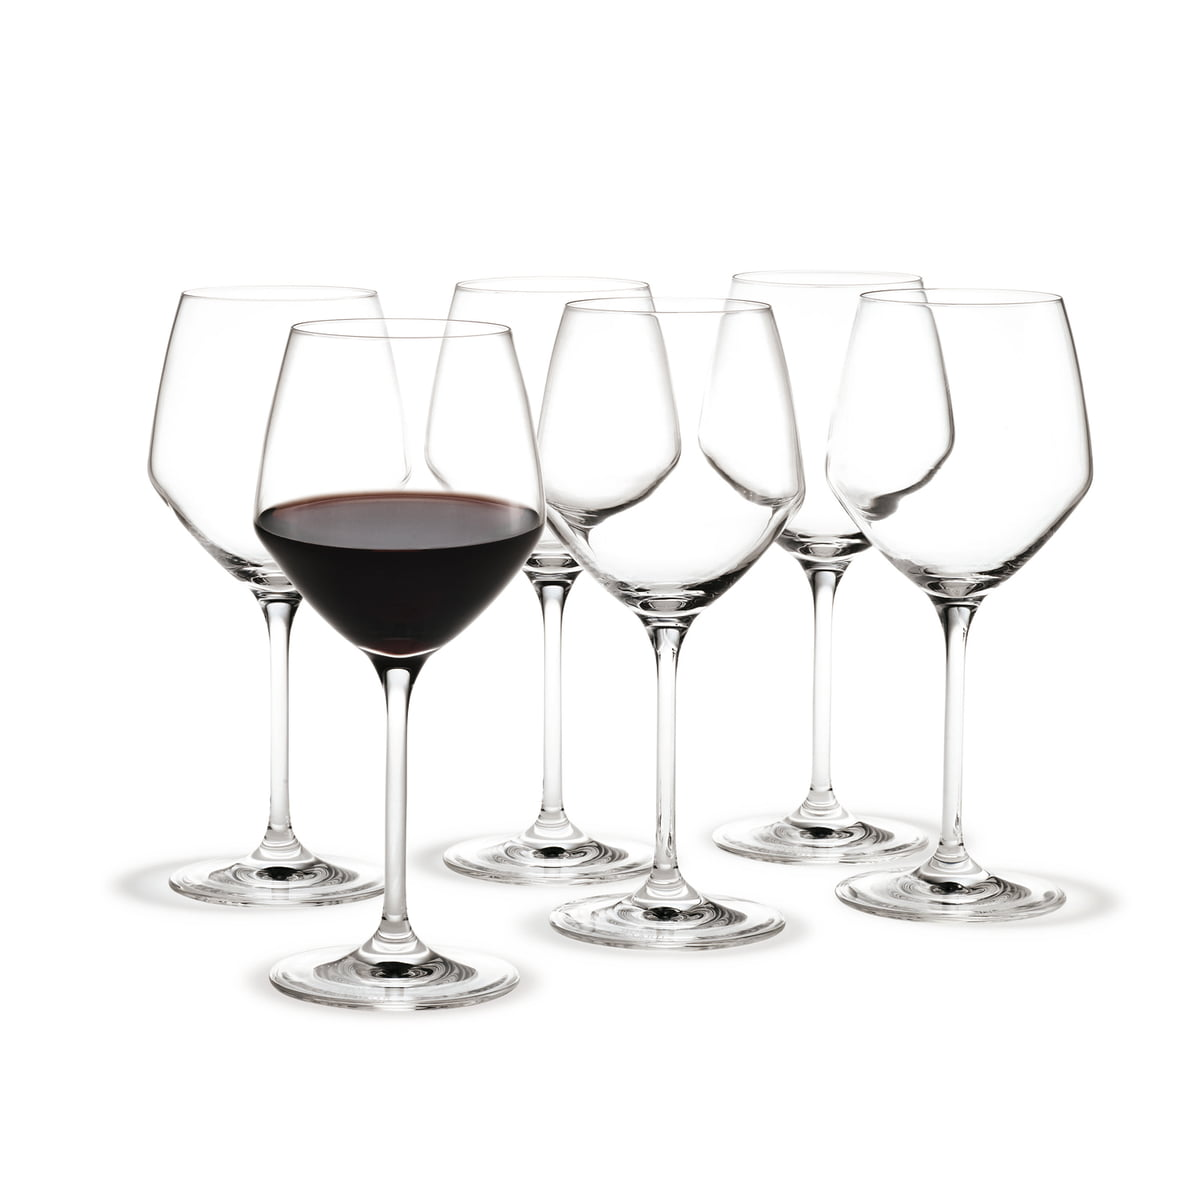 Perfection Drinking Glasses By Holmegaard: unusual drinking glasses uk